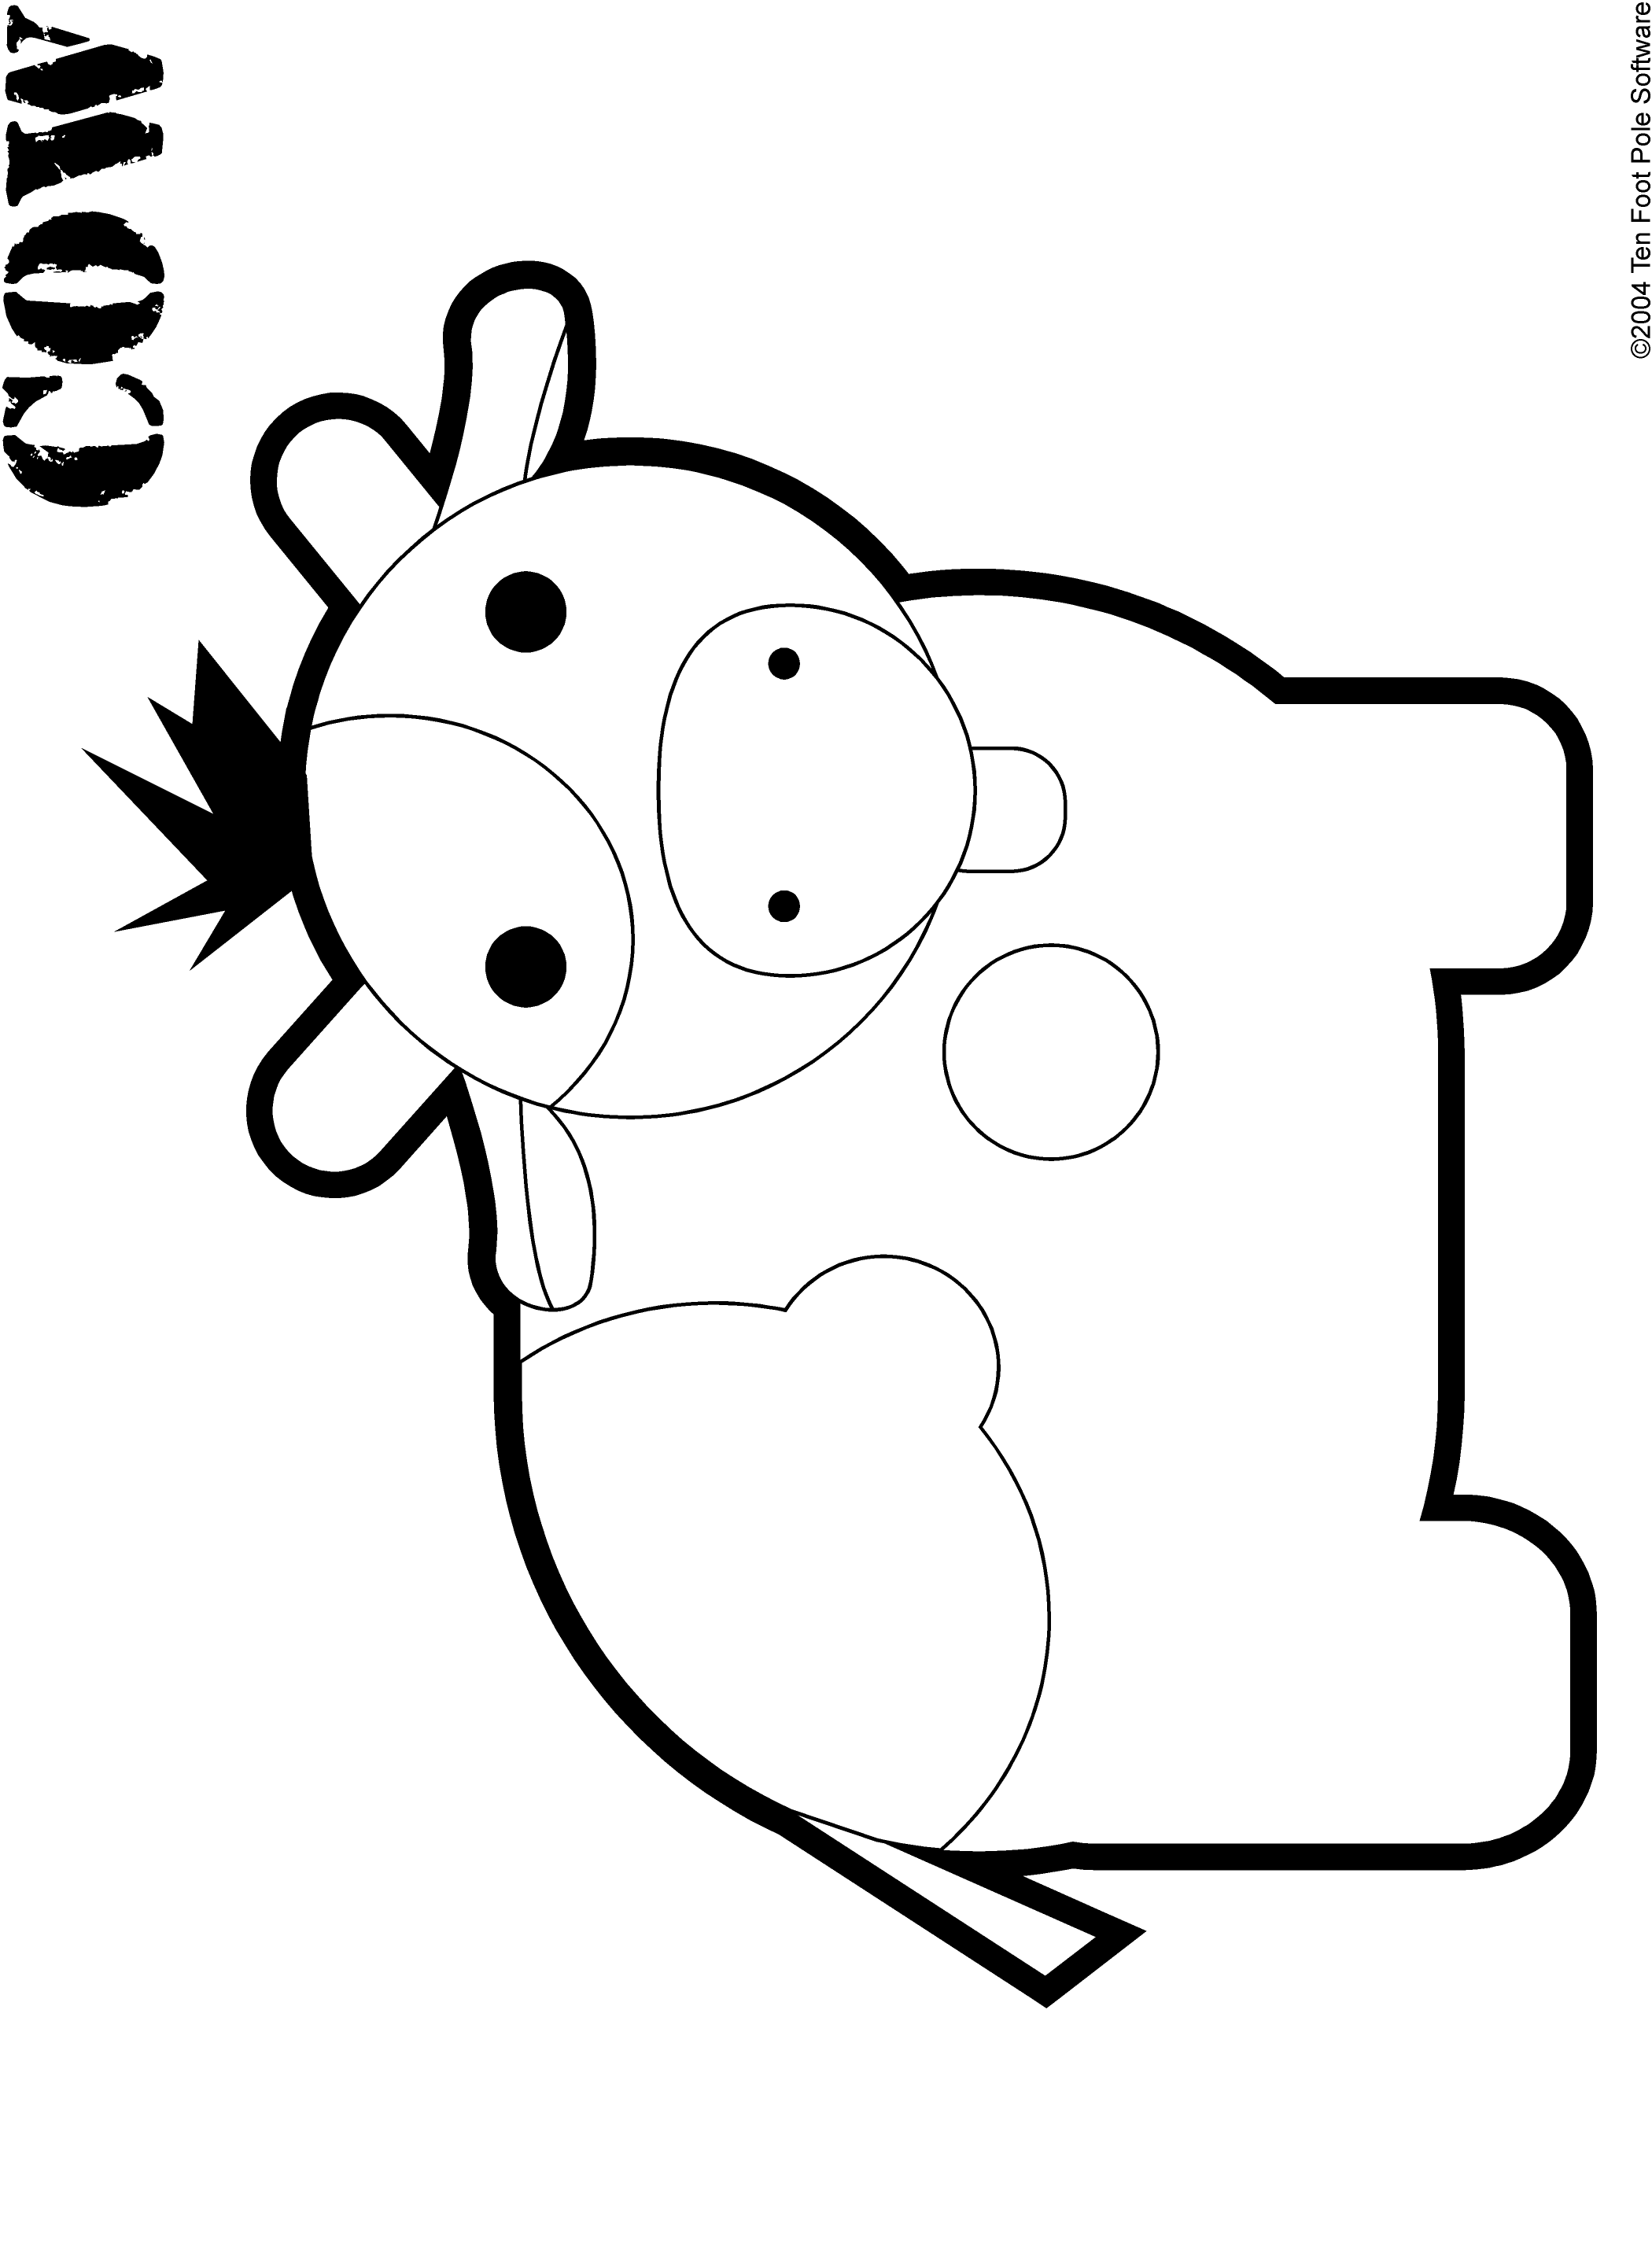 Coloring book software - Cow Print Pictures On Animal Picture Society